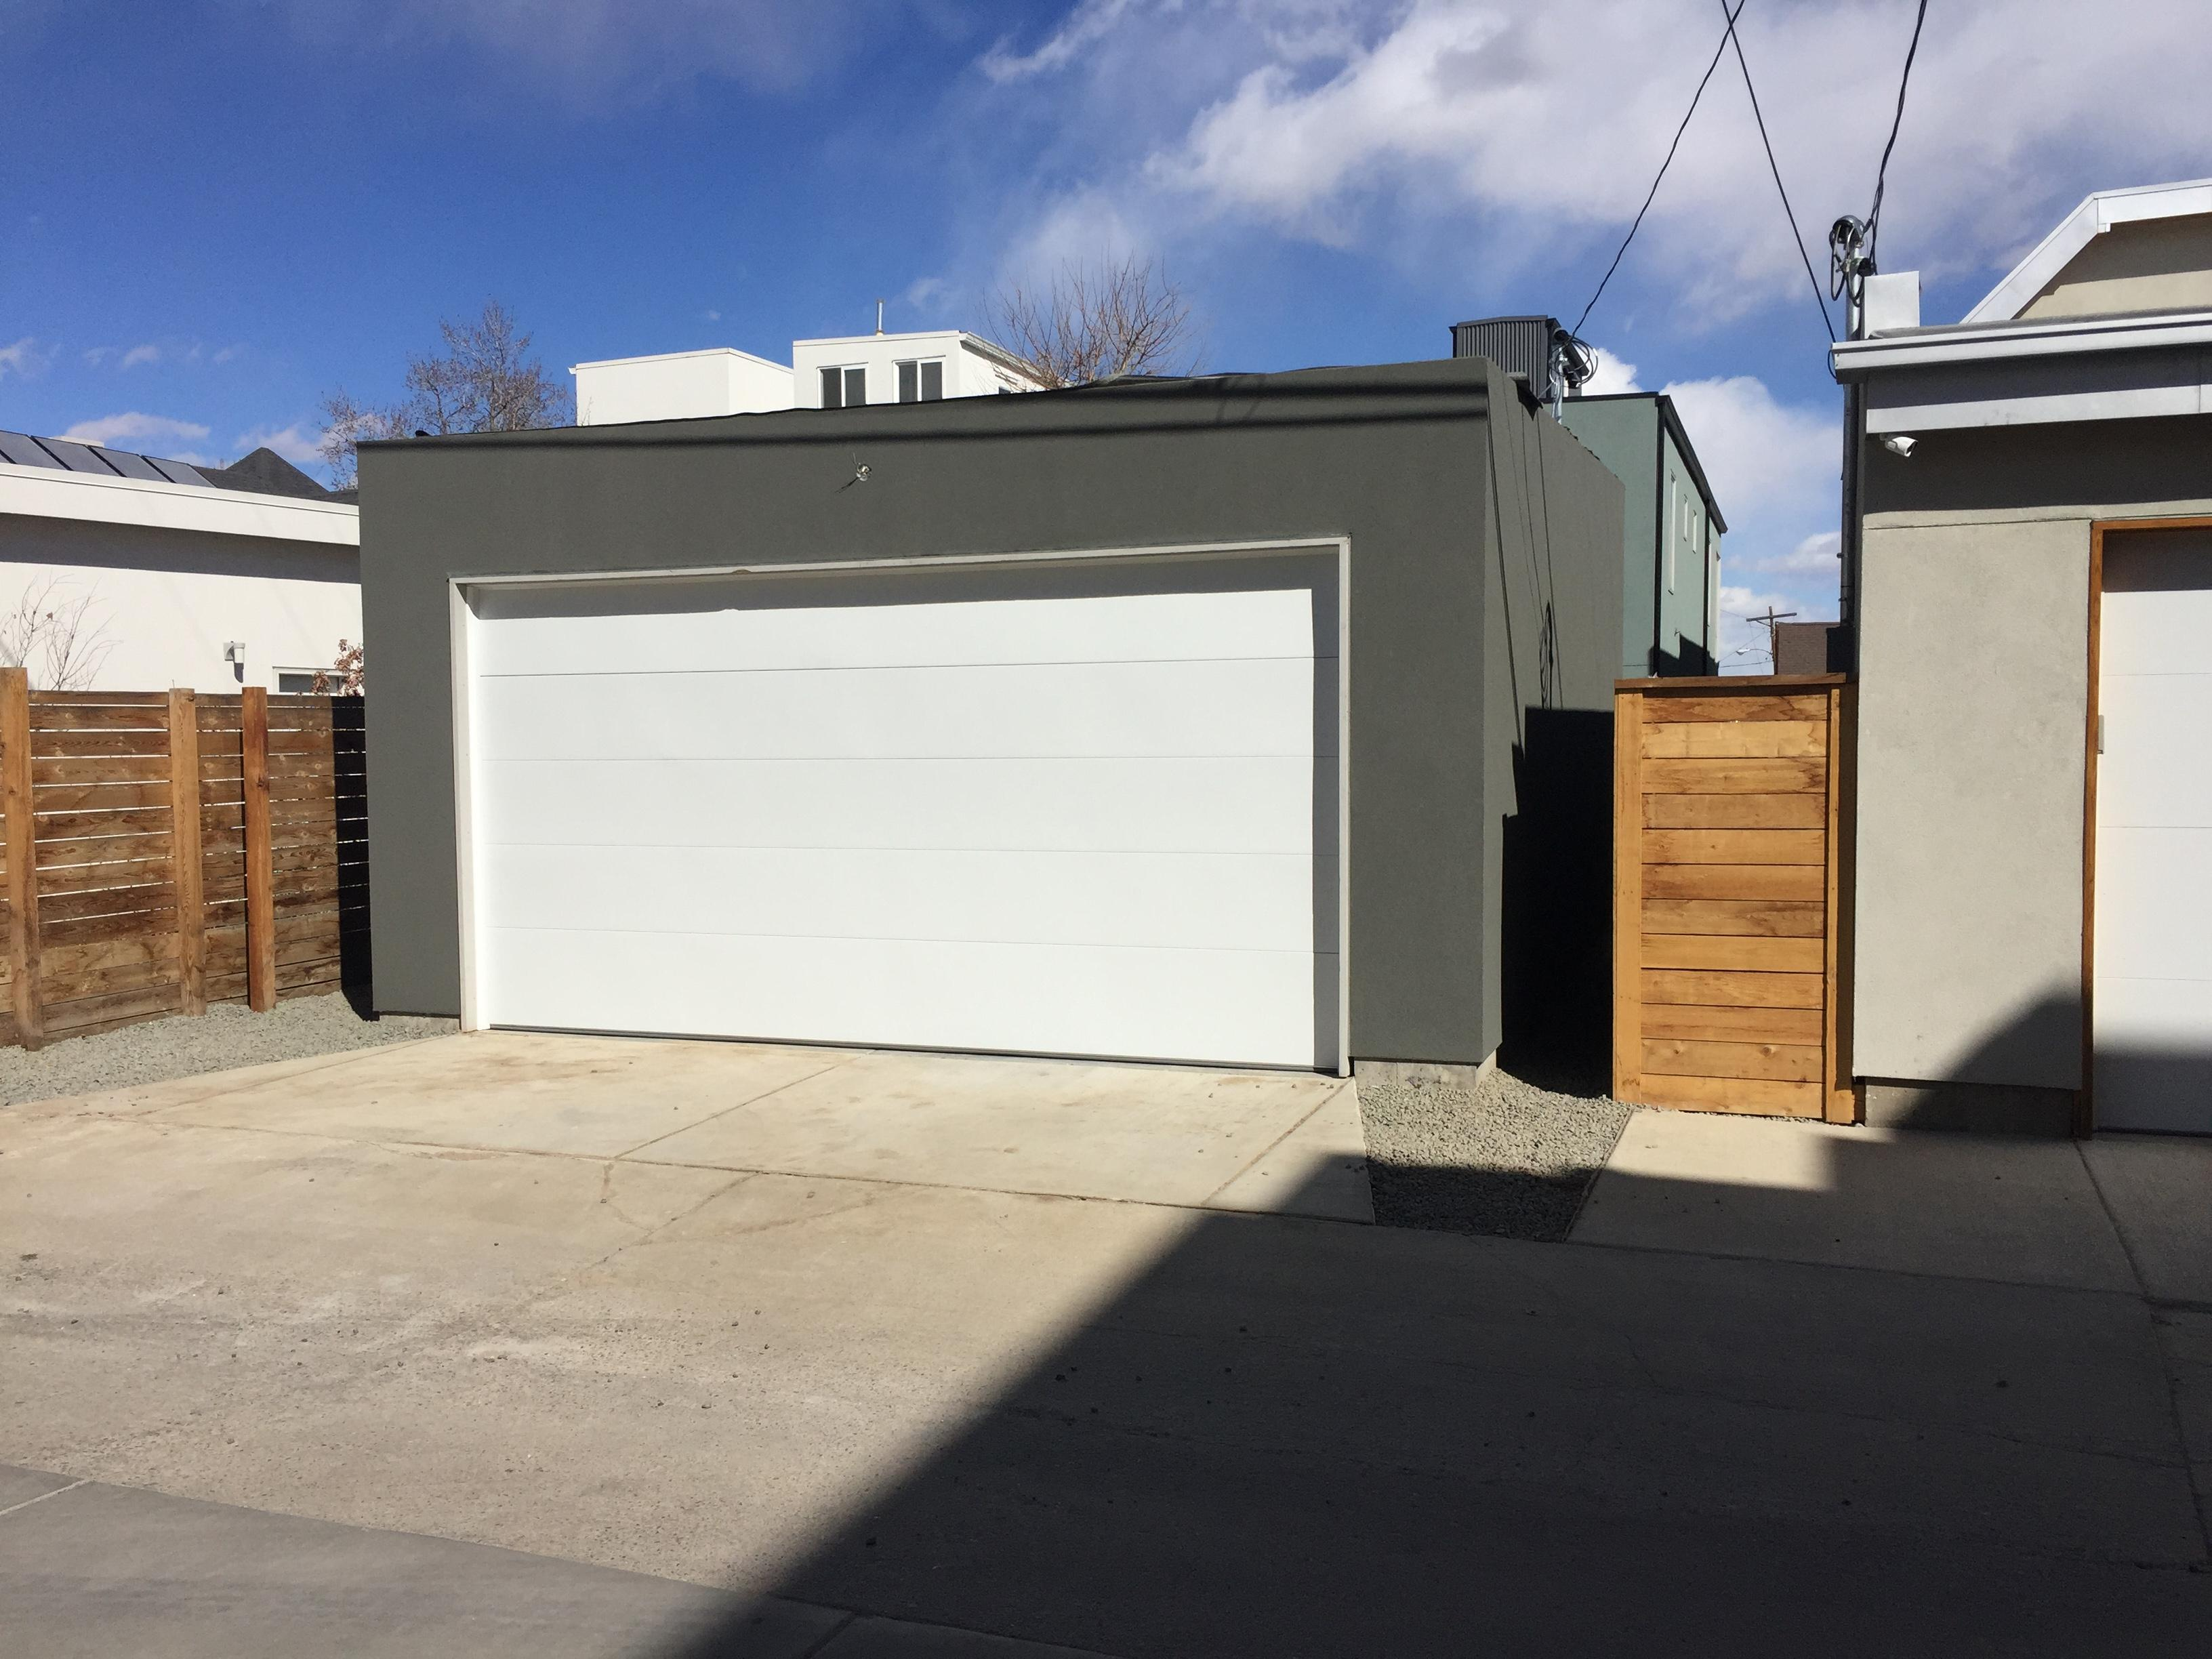 Amazing Aurora Garage Doors   G Amp L Garage Doors In Aurora Co 80014  Chamberofcommerce Com